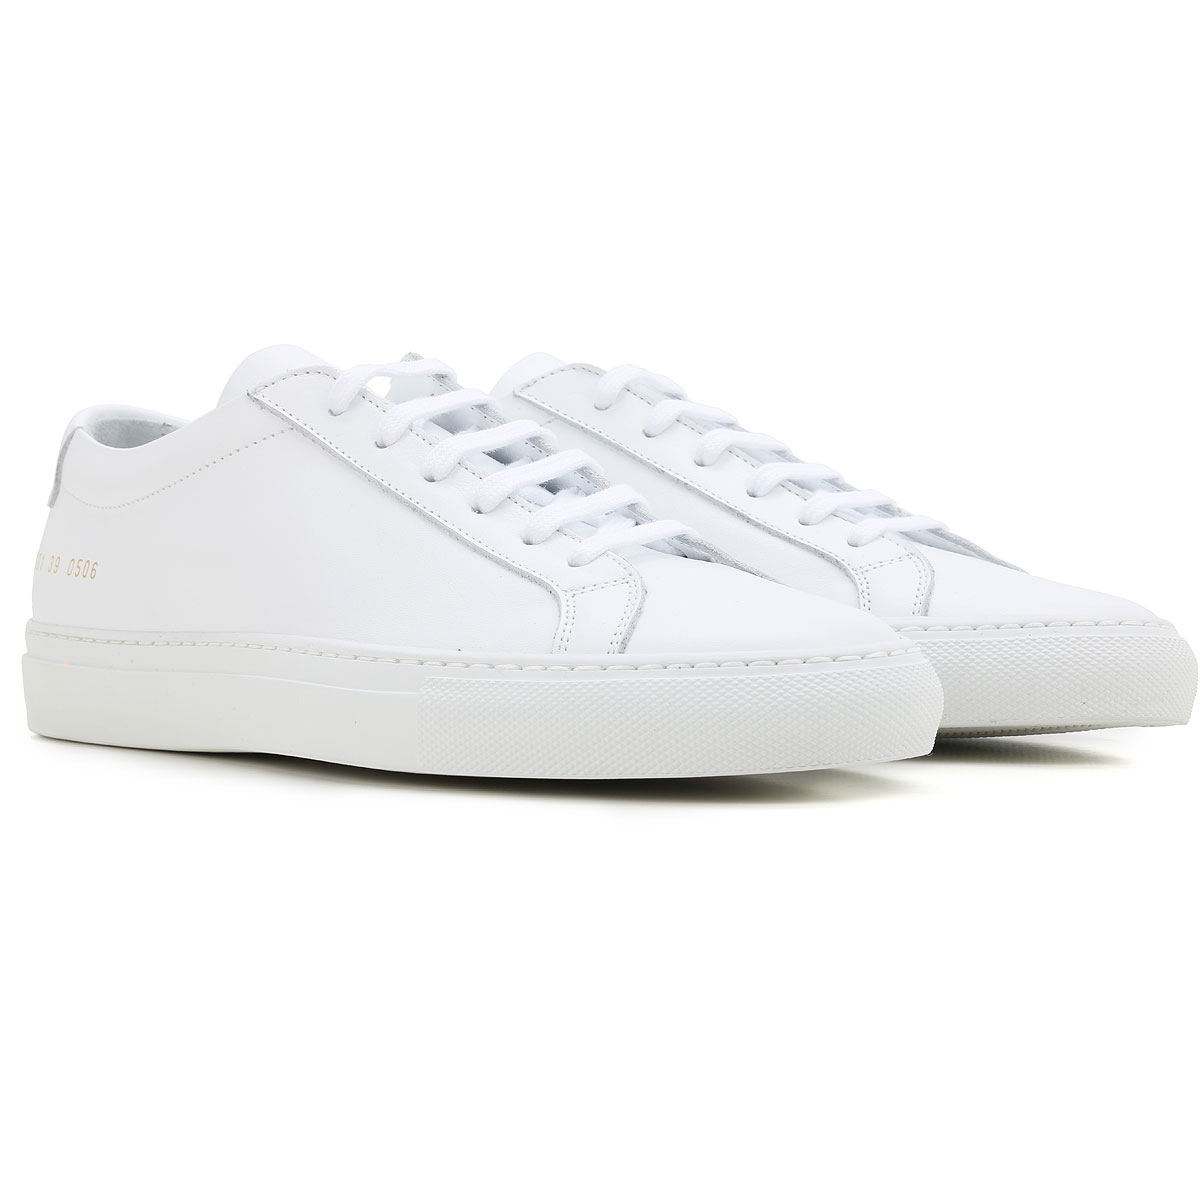 Image of Woman by Common Projects Sneakers for Women, White, Leather, 2017, 10 6 8 9